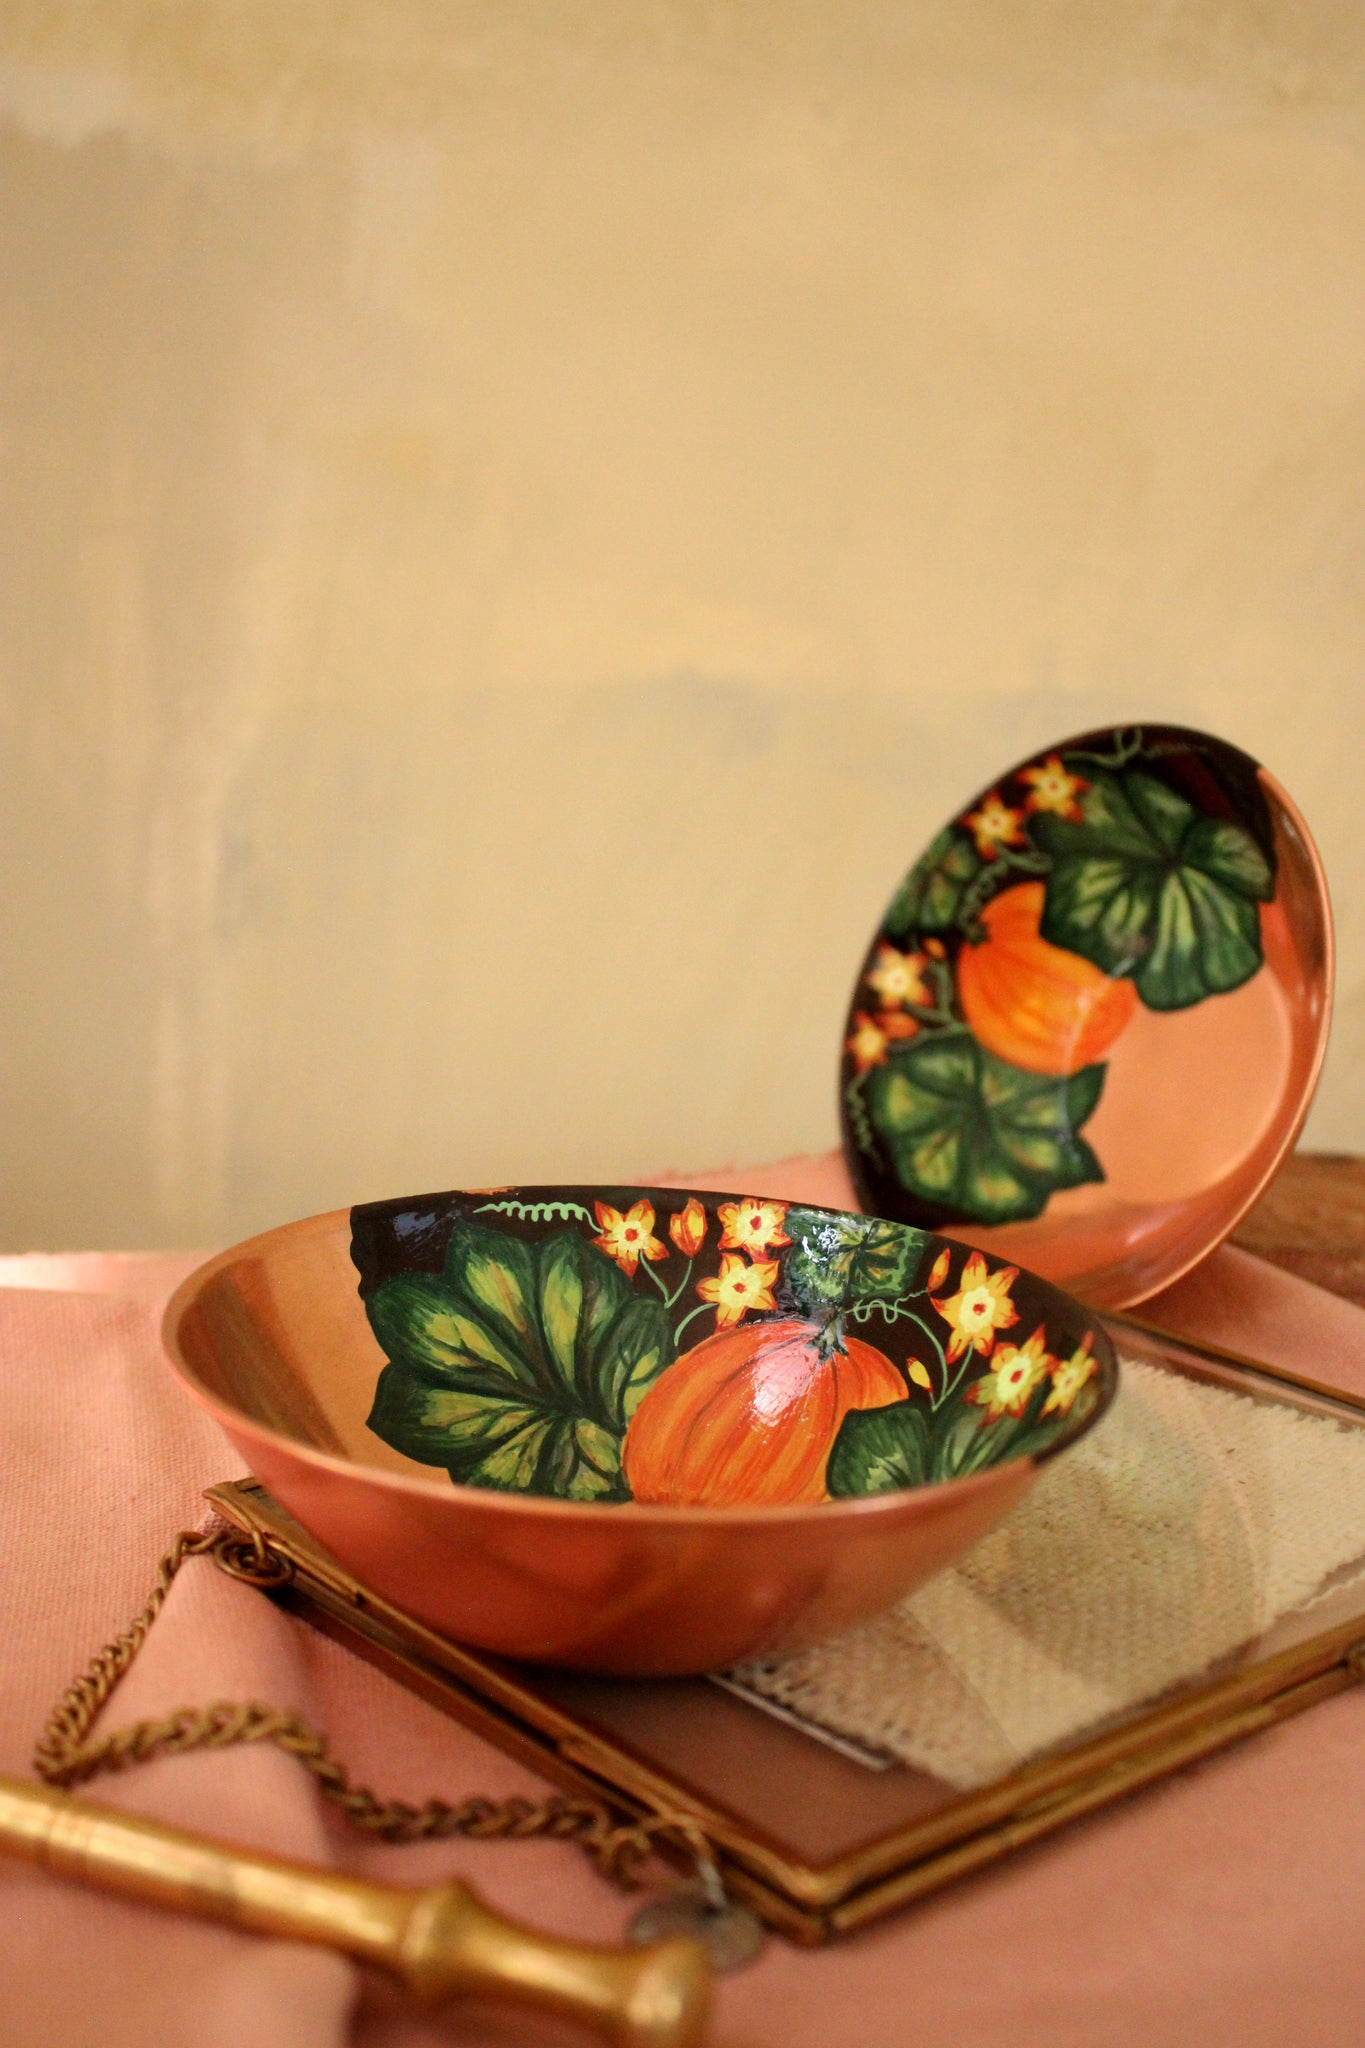 #IndiaInspired: Kaddu Bowl